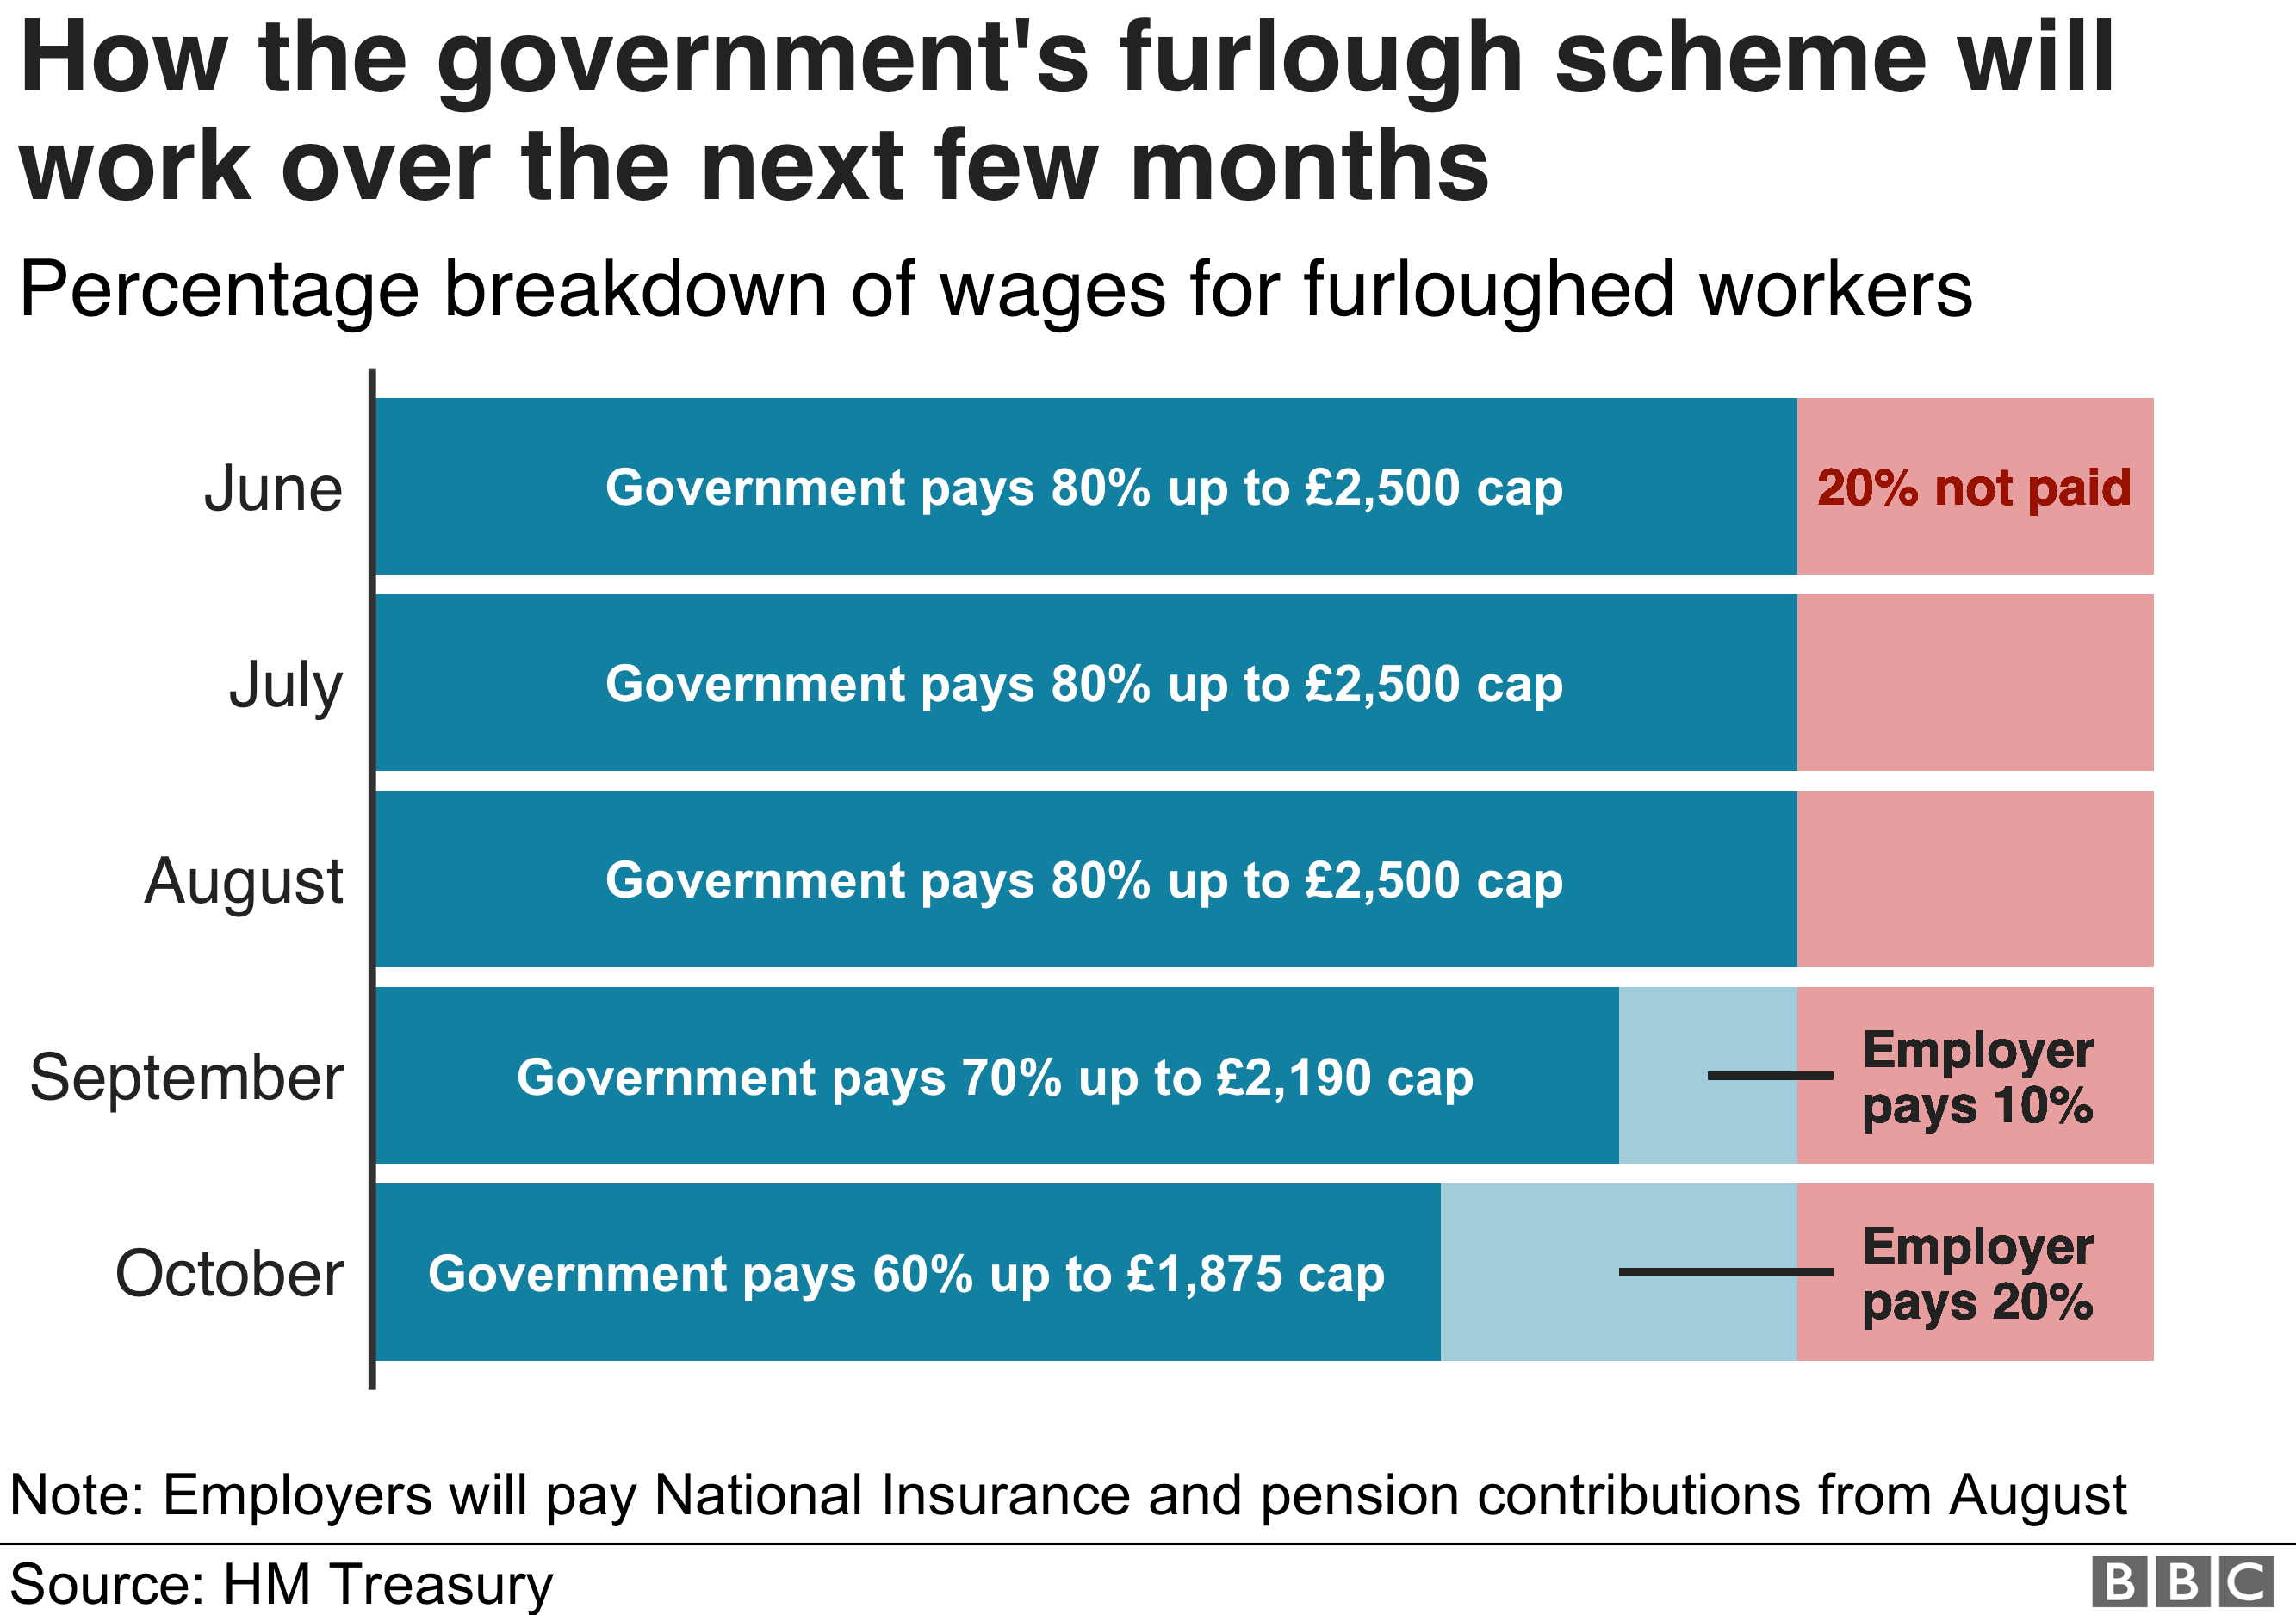 Chart showing how the government's furlough scheme will work over the next few months